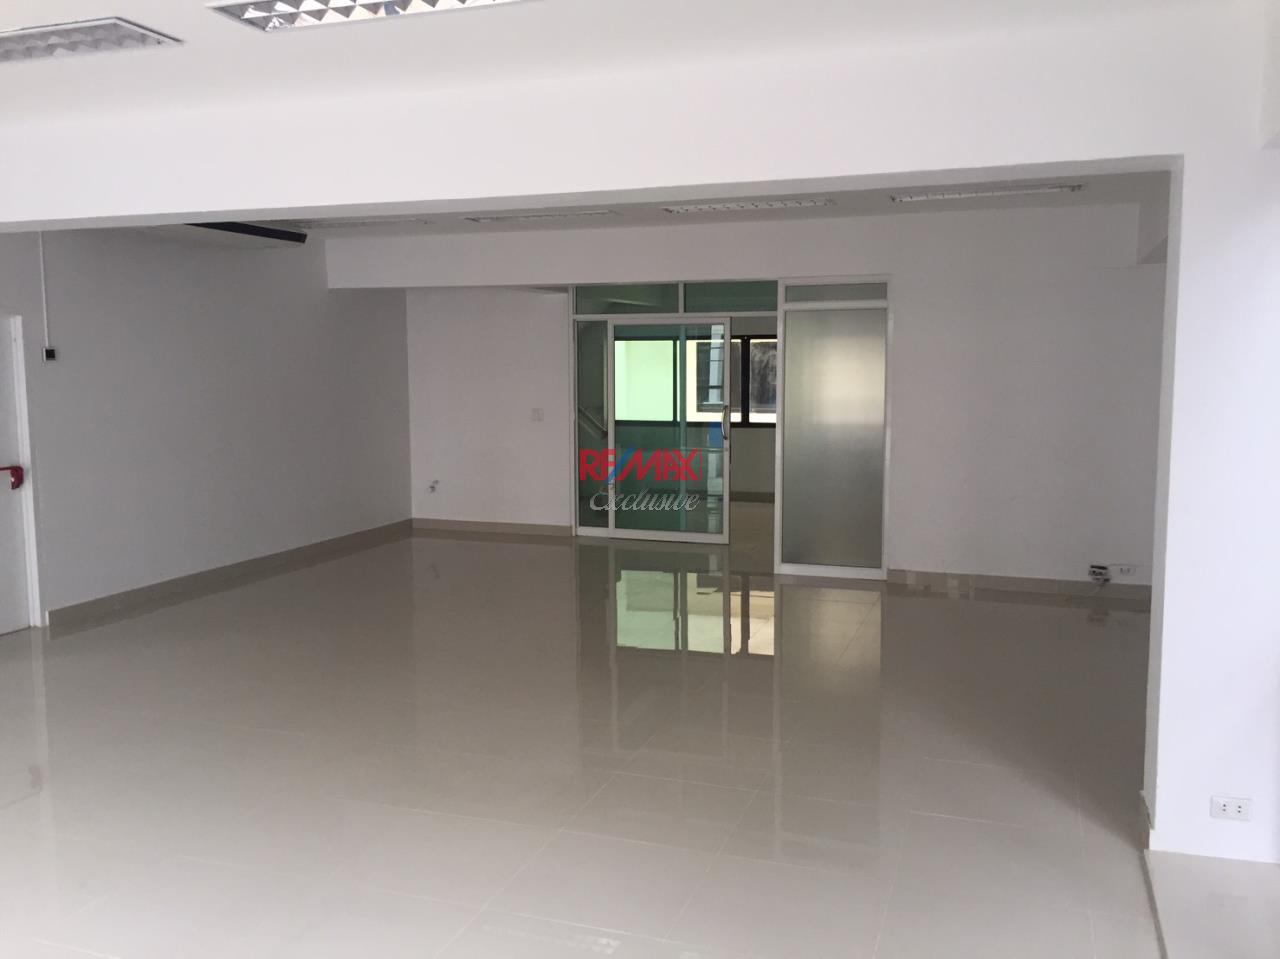 RE/MAX Exclusive Agency's Office building for rent in Ladprao 11